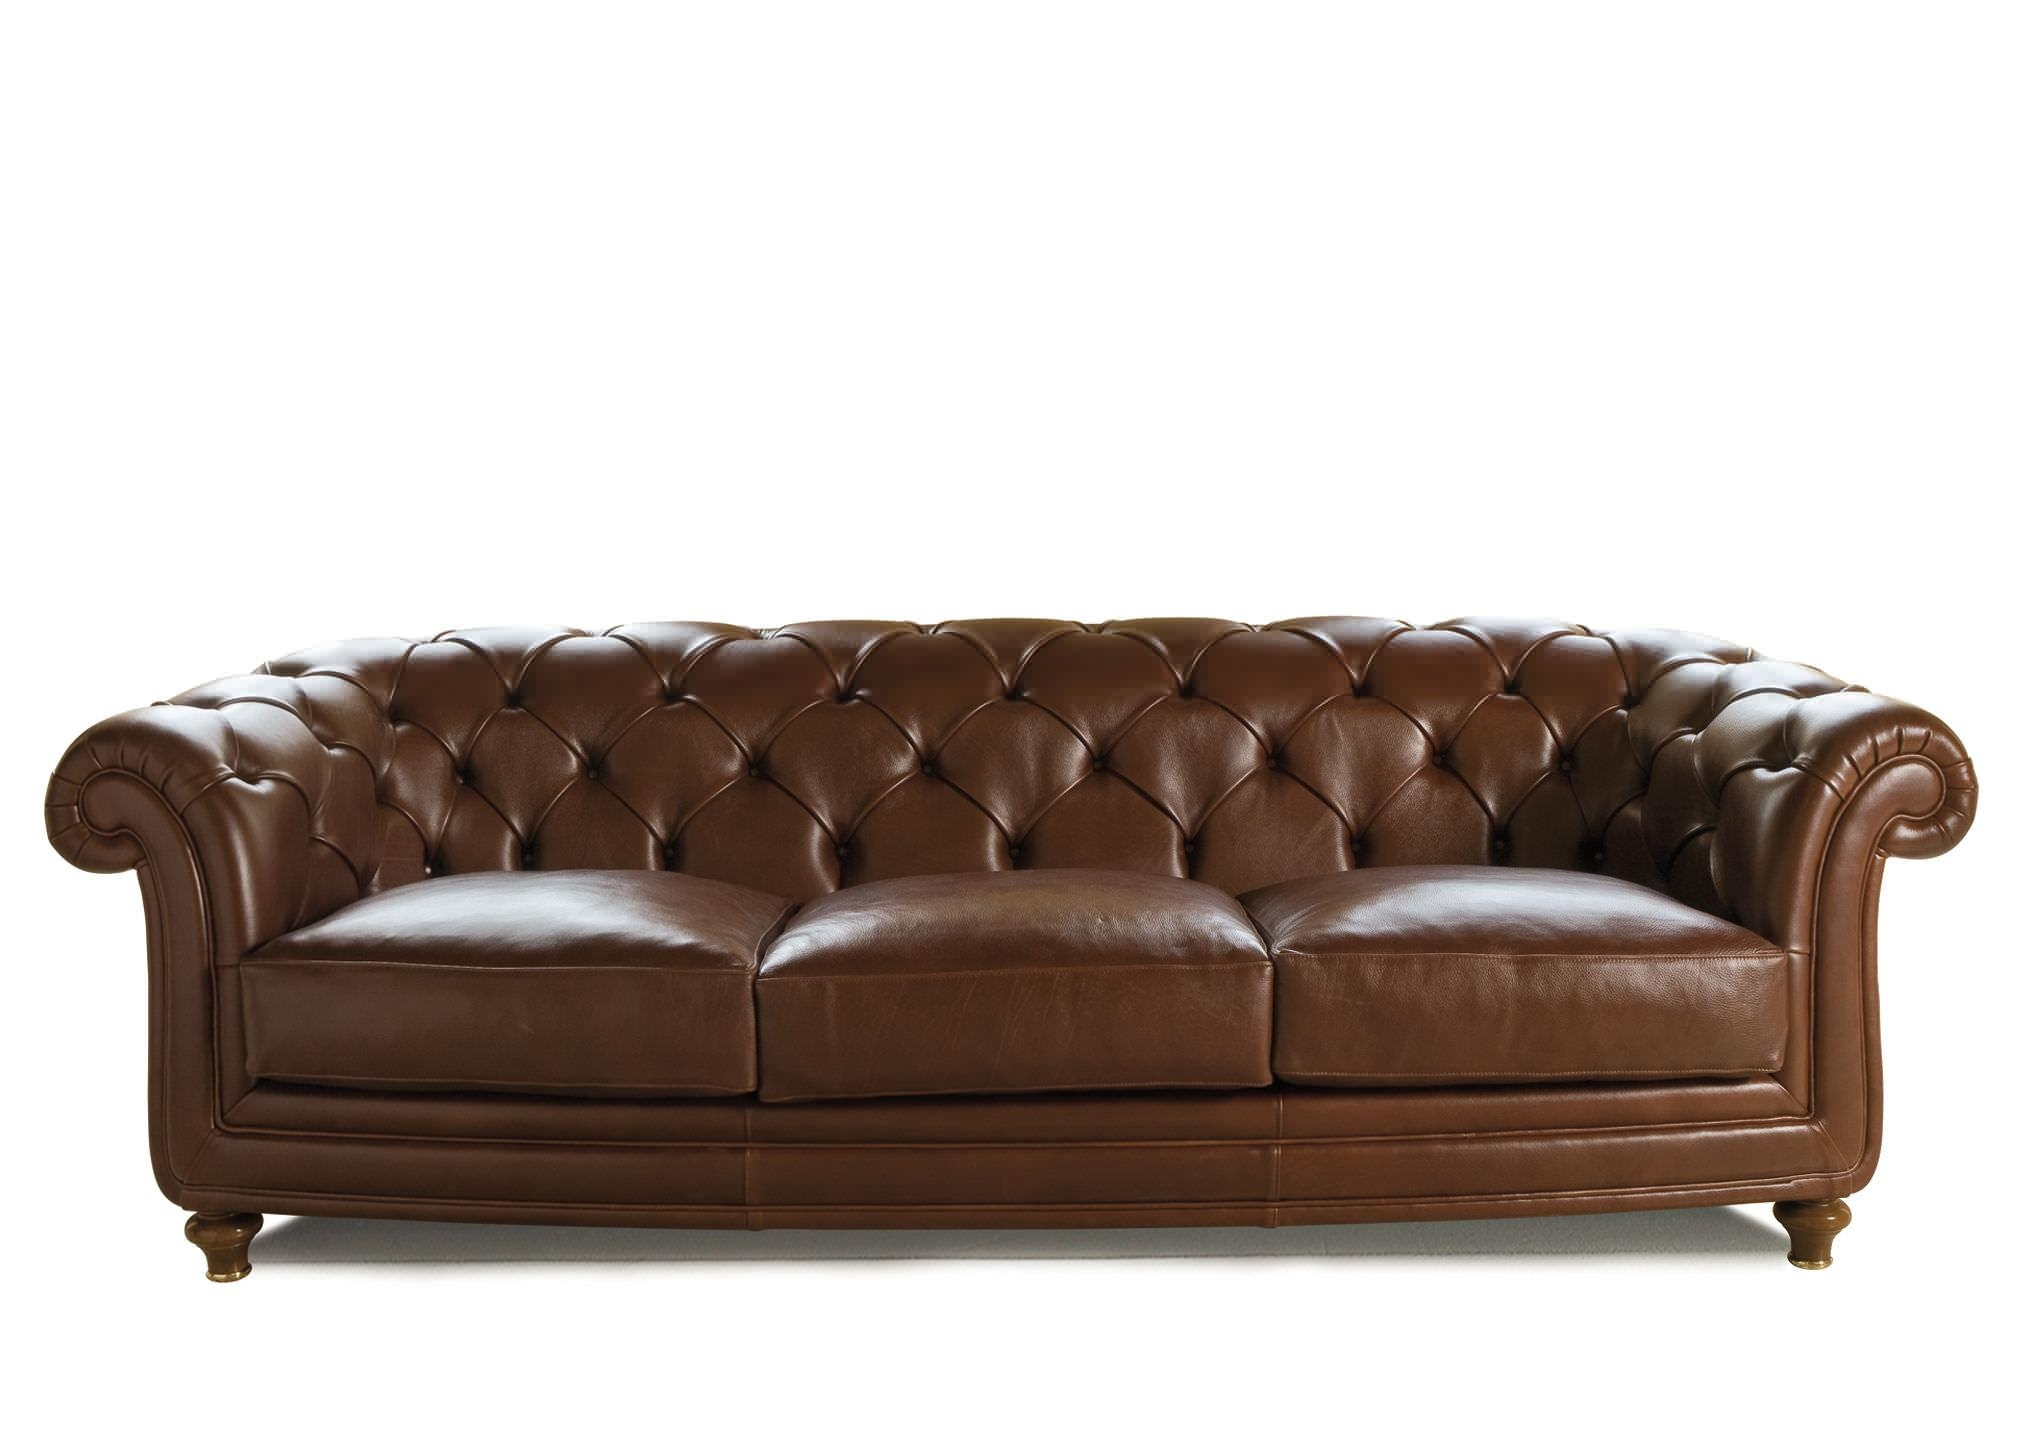 Chesterfield Sofa / Leather / Fabric / 3 Seater – Oxford – Berto With Regard To Oxford Sofas (View 4 of 20)